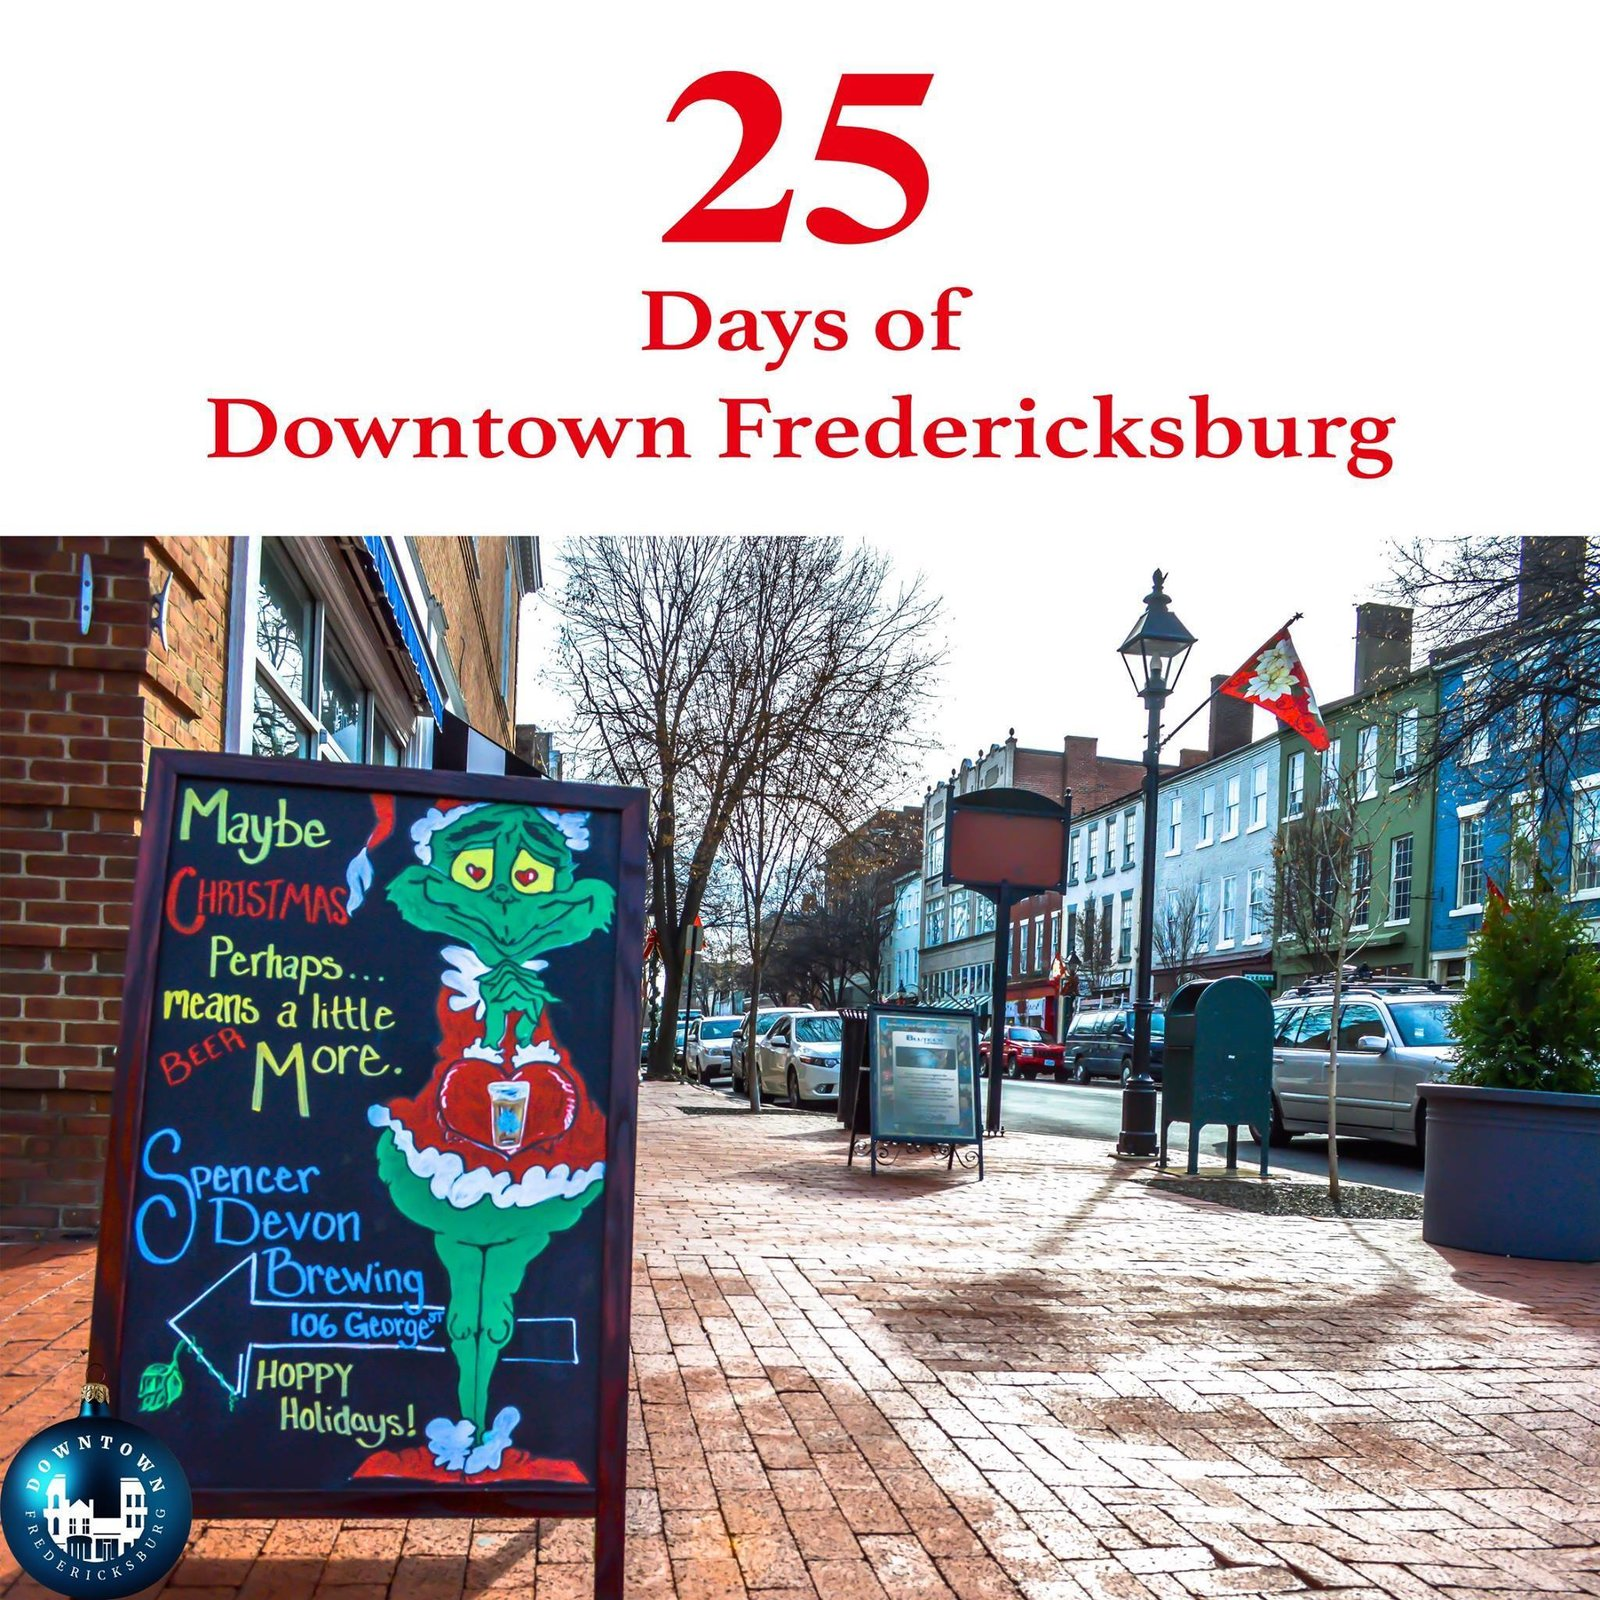 Gift Twenty-three And what happened then? Well, in Downtown Fredericksburg they say, that the Grinch's heart grew with a family trip to Spencer Devon Brewing that day! https://www.facebook.com/DowntownFredericksburg/  25 Days of Downtown Fredericksburg by Downtown Fredericksburg